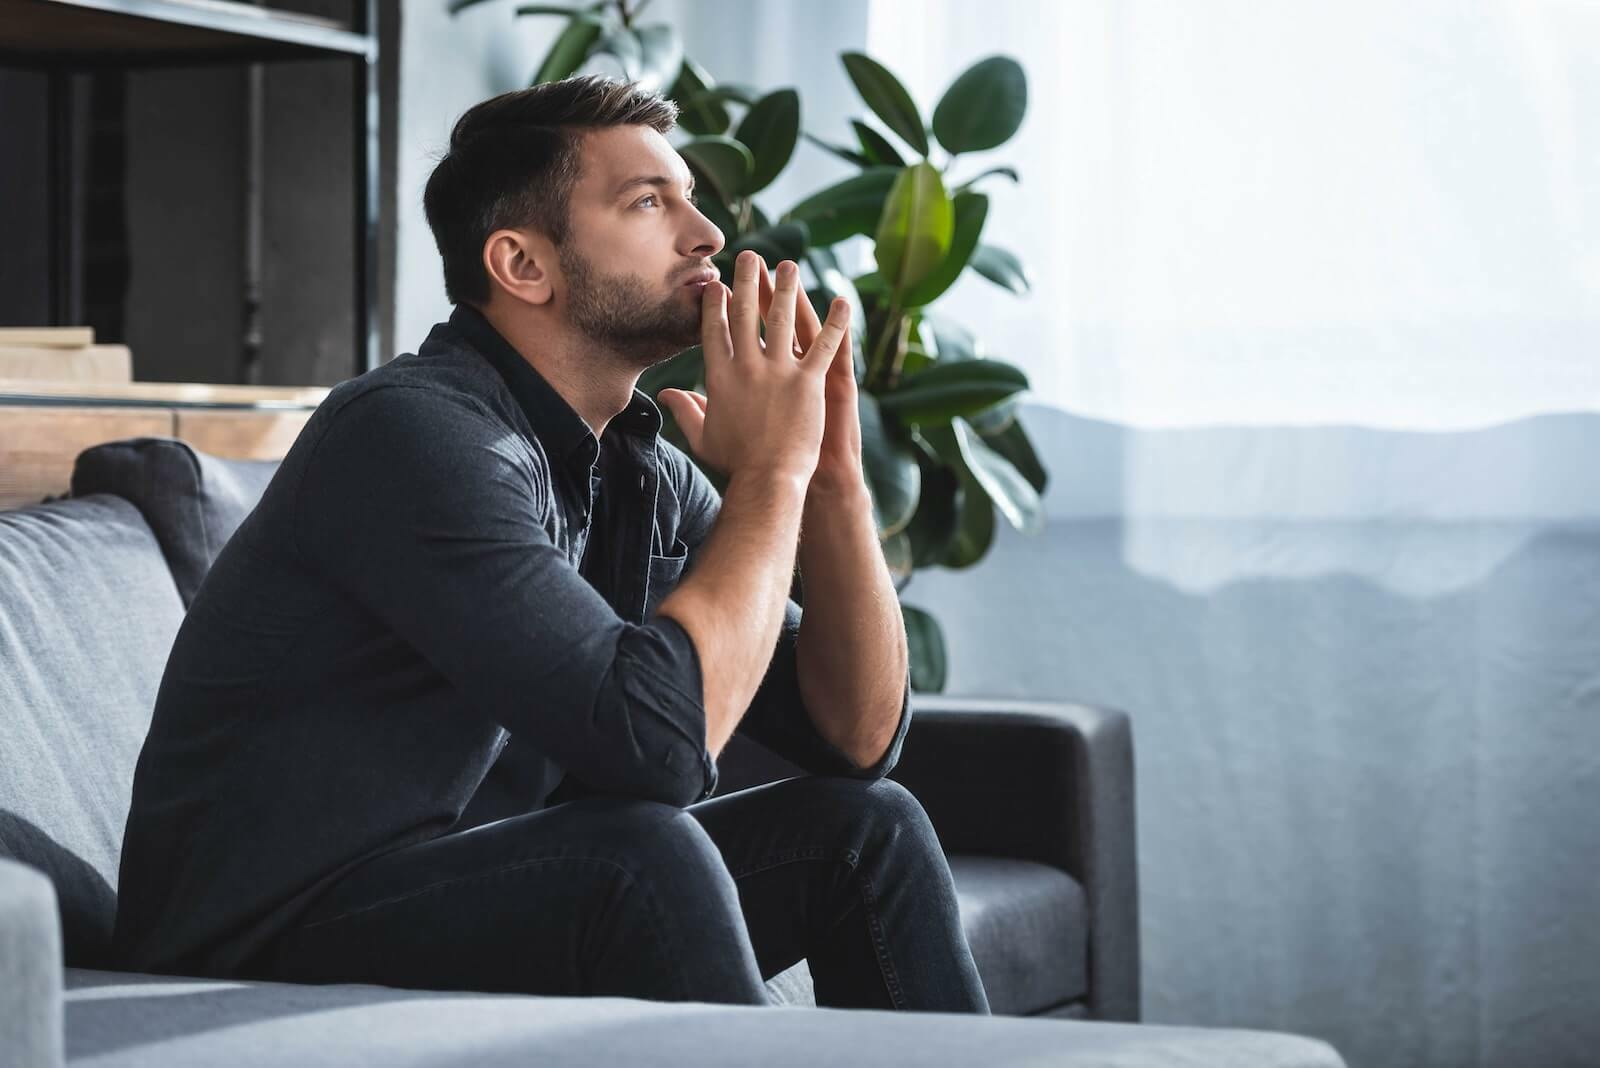 Cold sweats: man in deep thought